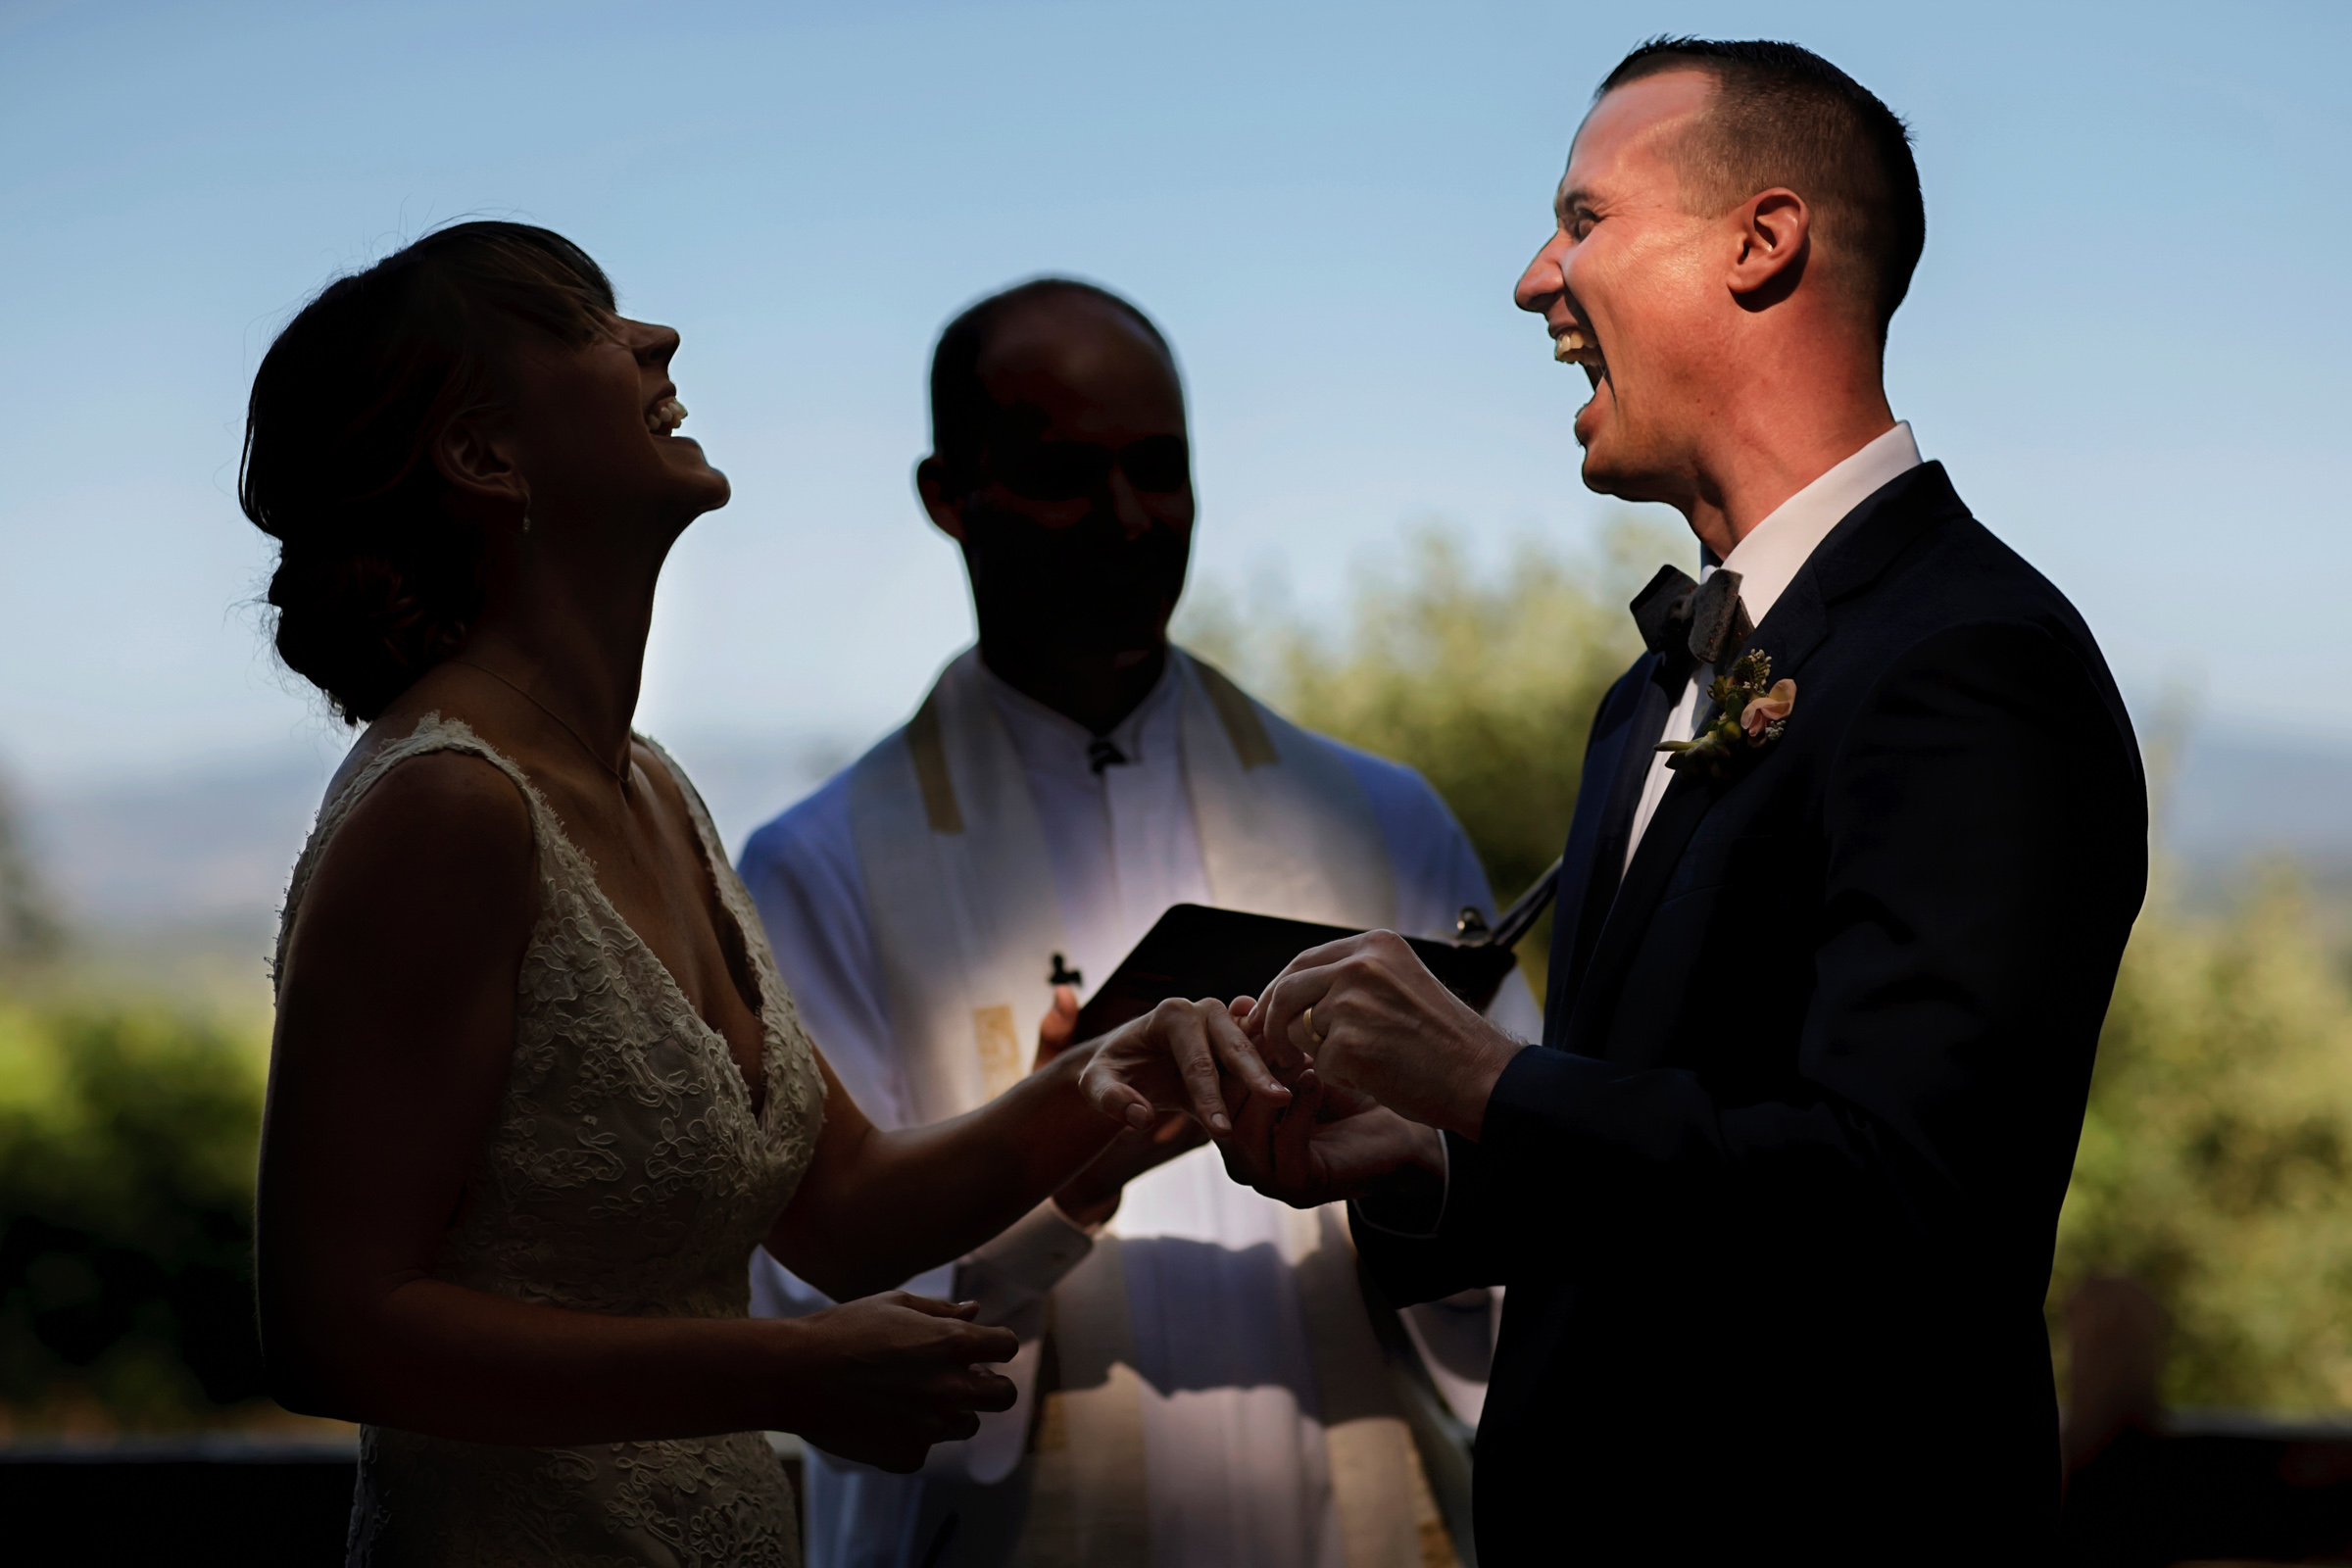 Laughter at ceremony - photo by Chrisman Studios